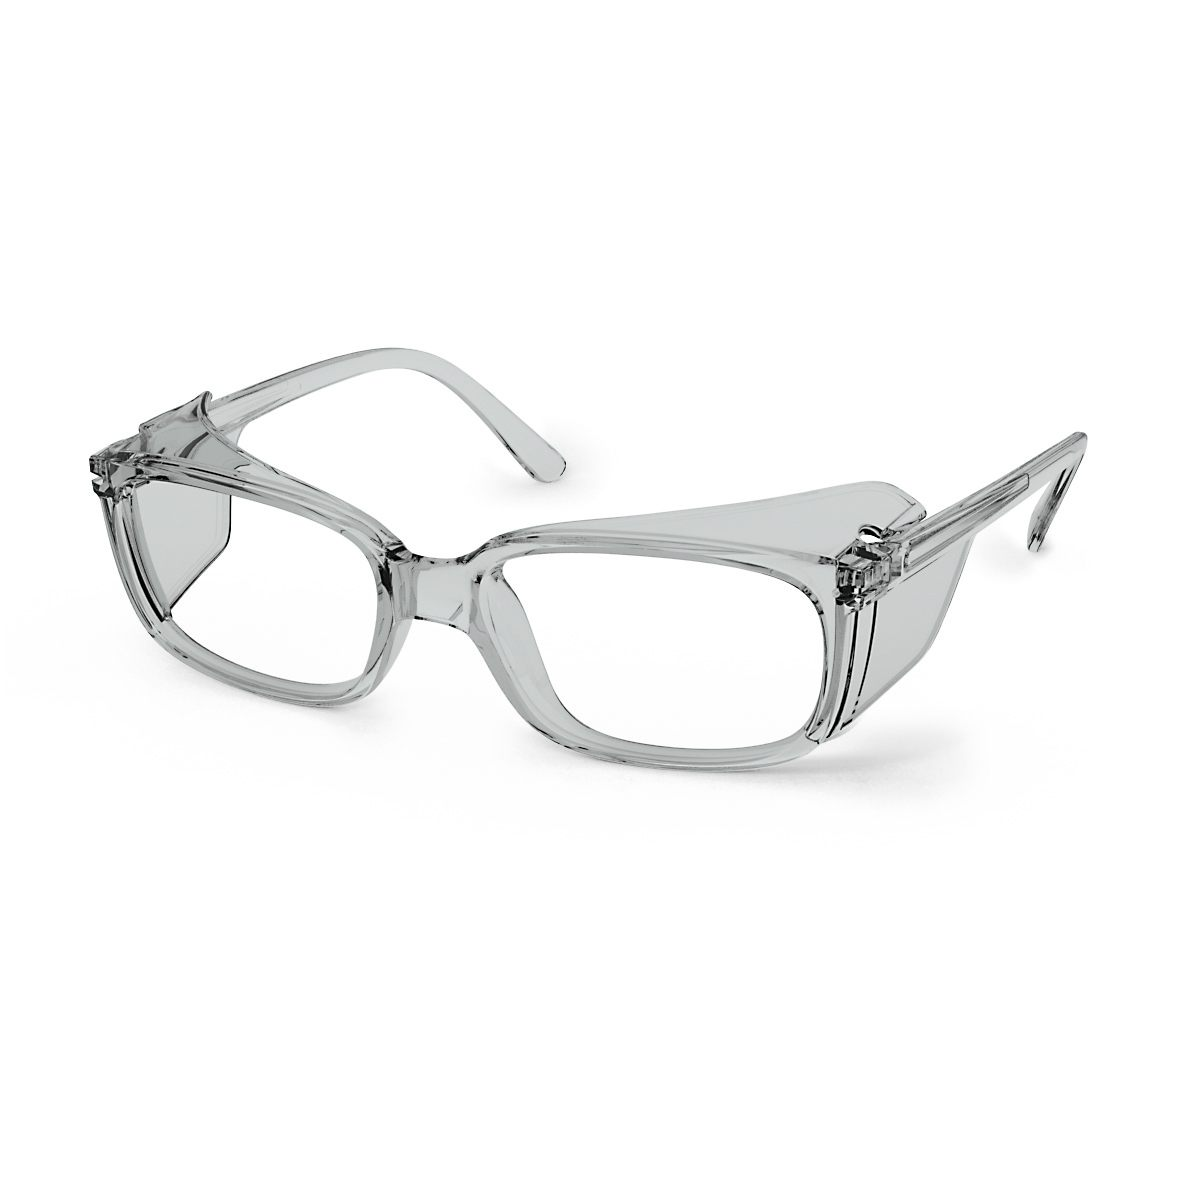 6b5a3786677 uvex RX 5506 prescription safety spectacles